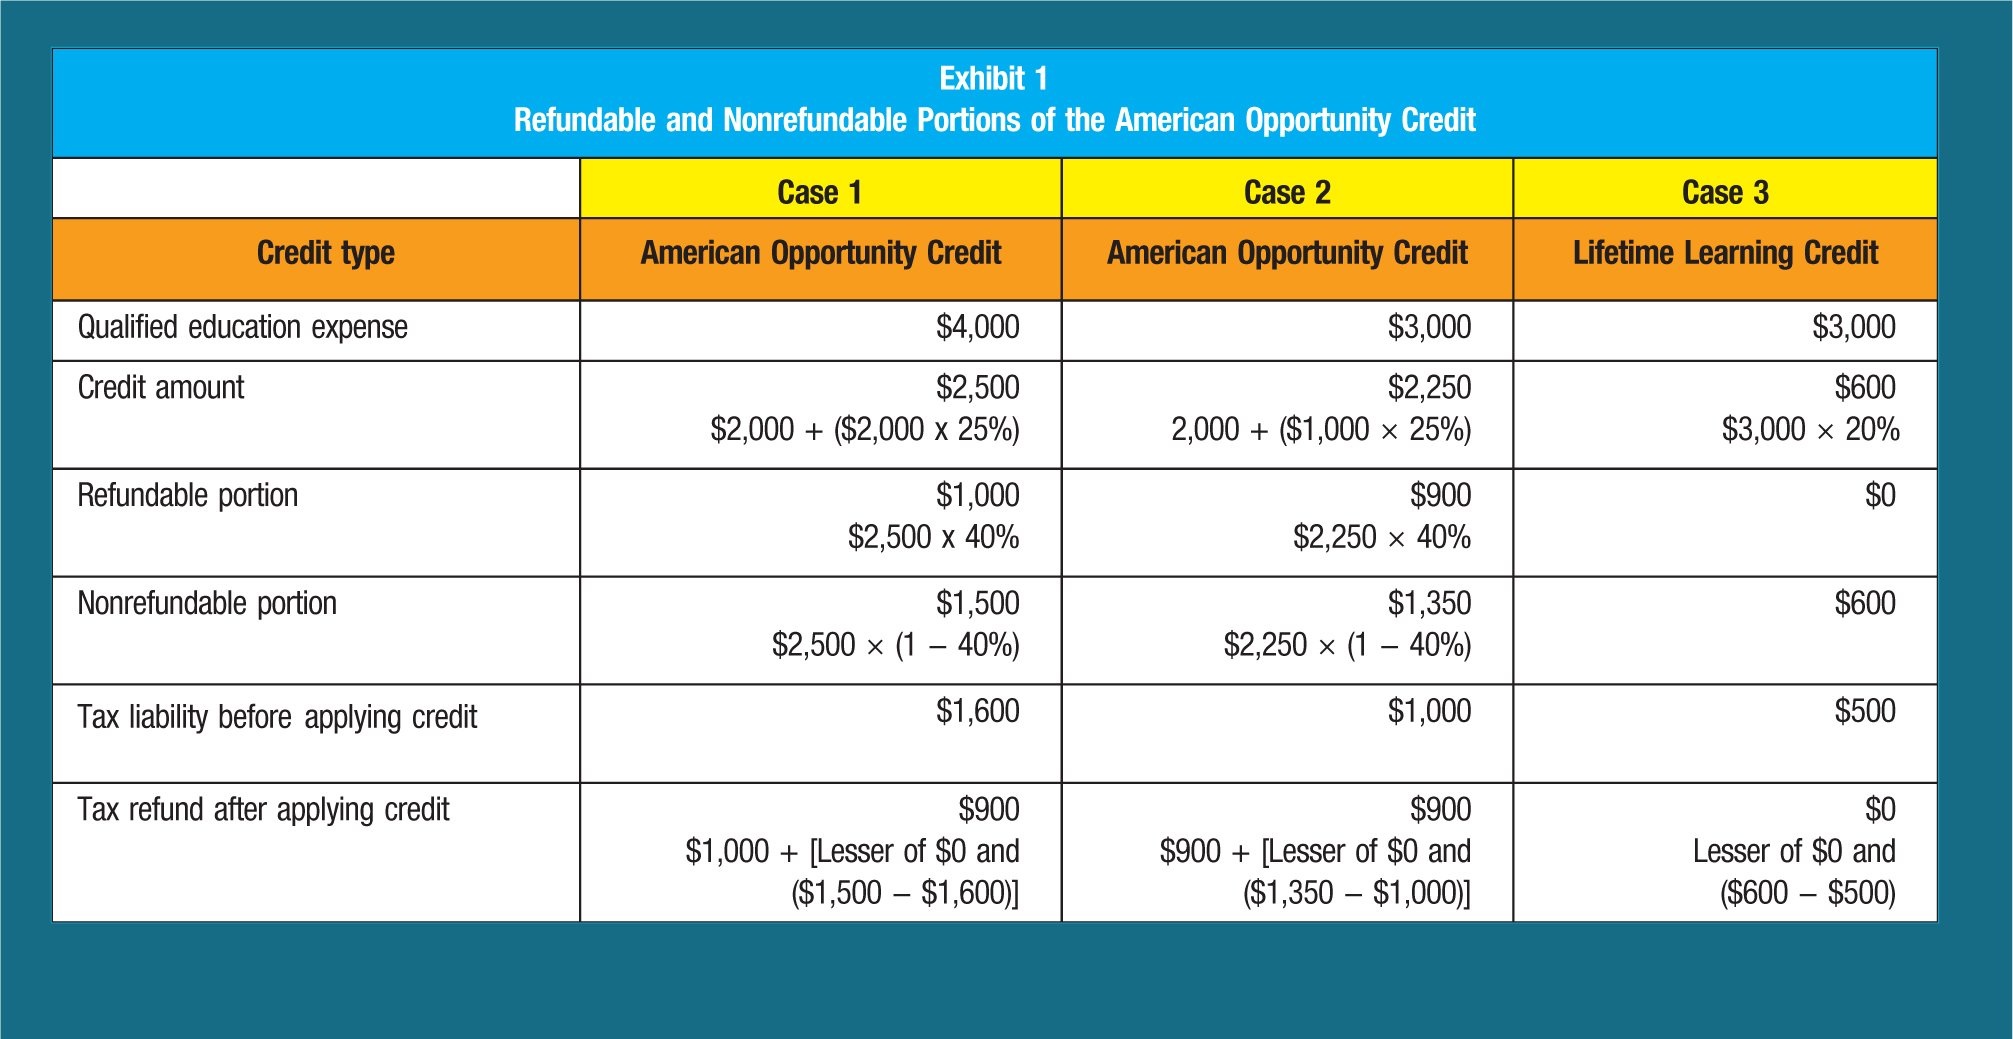 Case 1; Case 2; Case 3 Credit type; American Opportunity Credit; American Opportunity Credit; Lifetime Learning Credit Qualified education expense; $4,000; $3,000; $3,000 Credit amount; $2,500; $2,000 + ($2,000 x 25%); $2,250; 2,000 + ($1,000 × 25%); $600; $3,000 × 20% Refundable portion; $1,000; $2,500 x 40%; $900; $2,250 × 40%; $0 Nonrefundable portion; $1,500; $2,500 × (1 − 40%); $1,350; $2,250 × (1 − 40%); $600 Tax liability before applying credit; $1,600; $1,000; $500 Tax refund after applying credit; $900; $1,000 + [Lesser of $0 and ($1,500 − $1,600)]; $900; $900 + [Lesser of $0 and ($1,350 − $1,000)]; $0; Lesser of $0 and ($600 − $500)